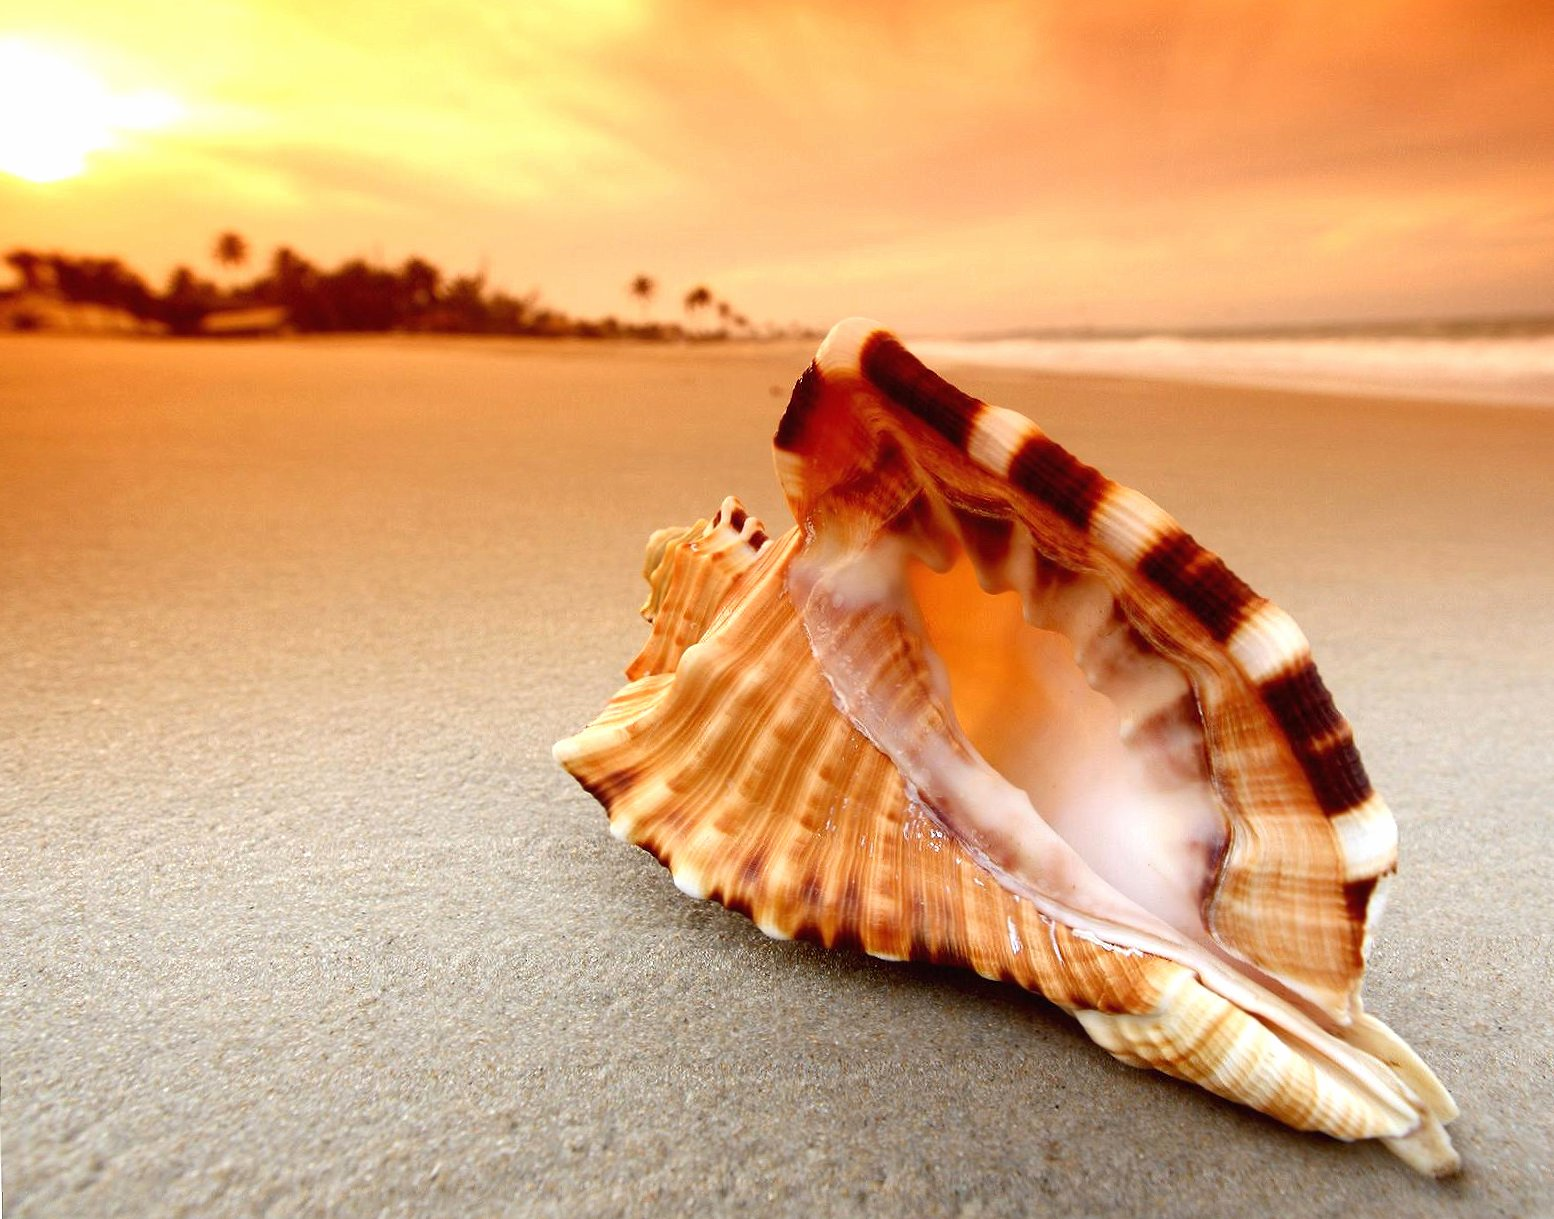 shell at sunset wallpapers HD quality